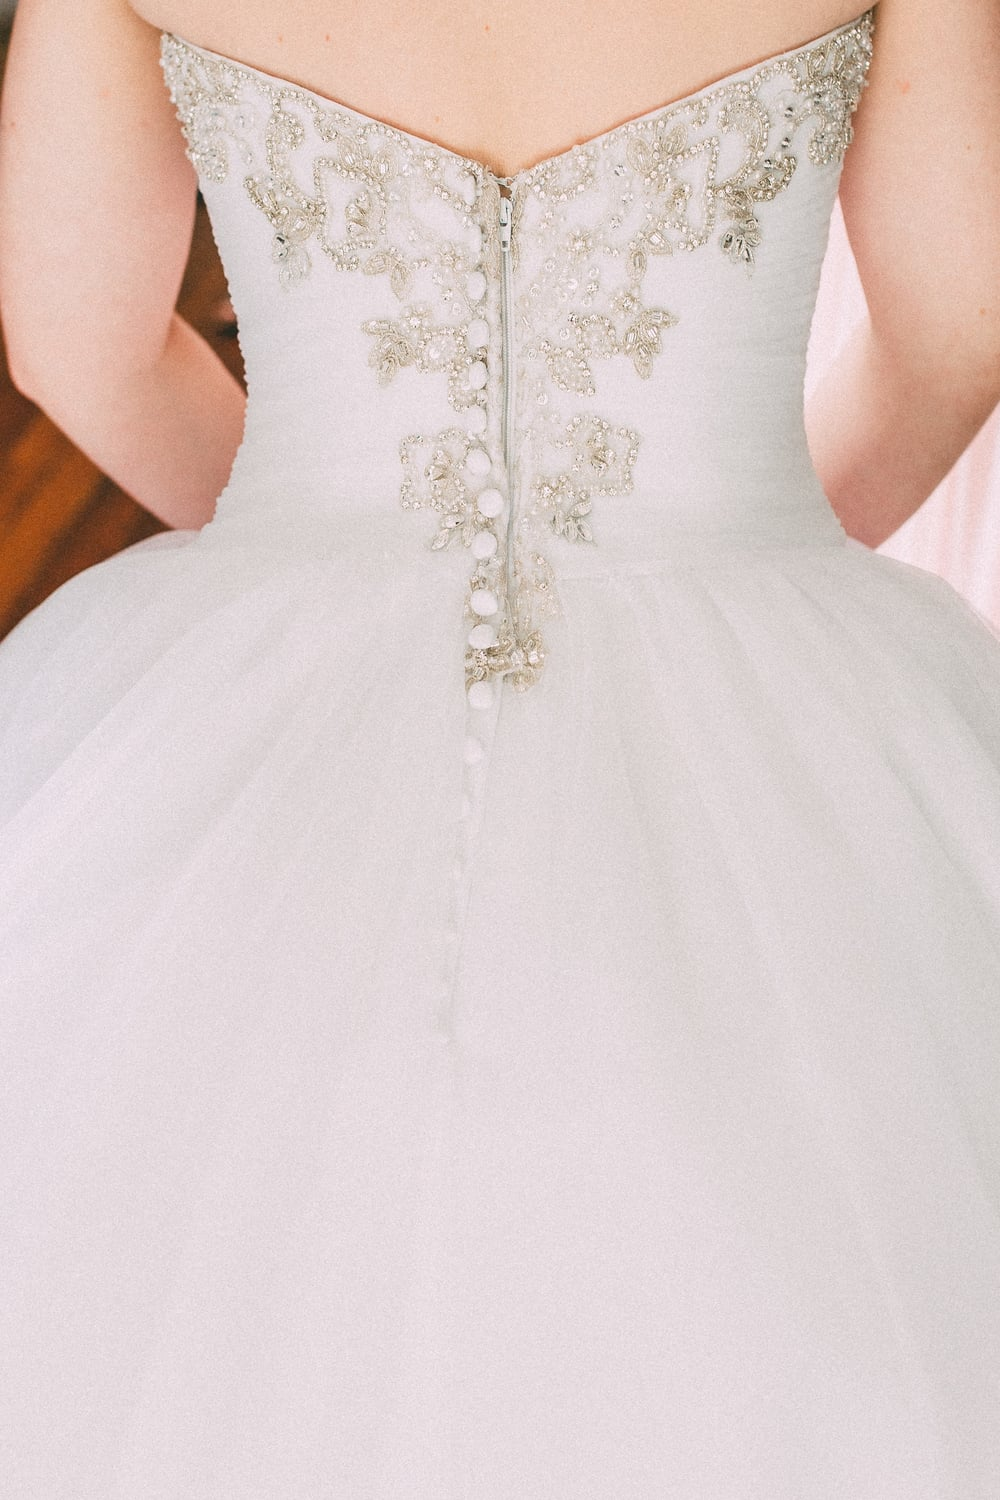 Up The Creek Farms, Palm Bay, Brevard County FL Wedding, bridal suite, back of dress photo